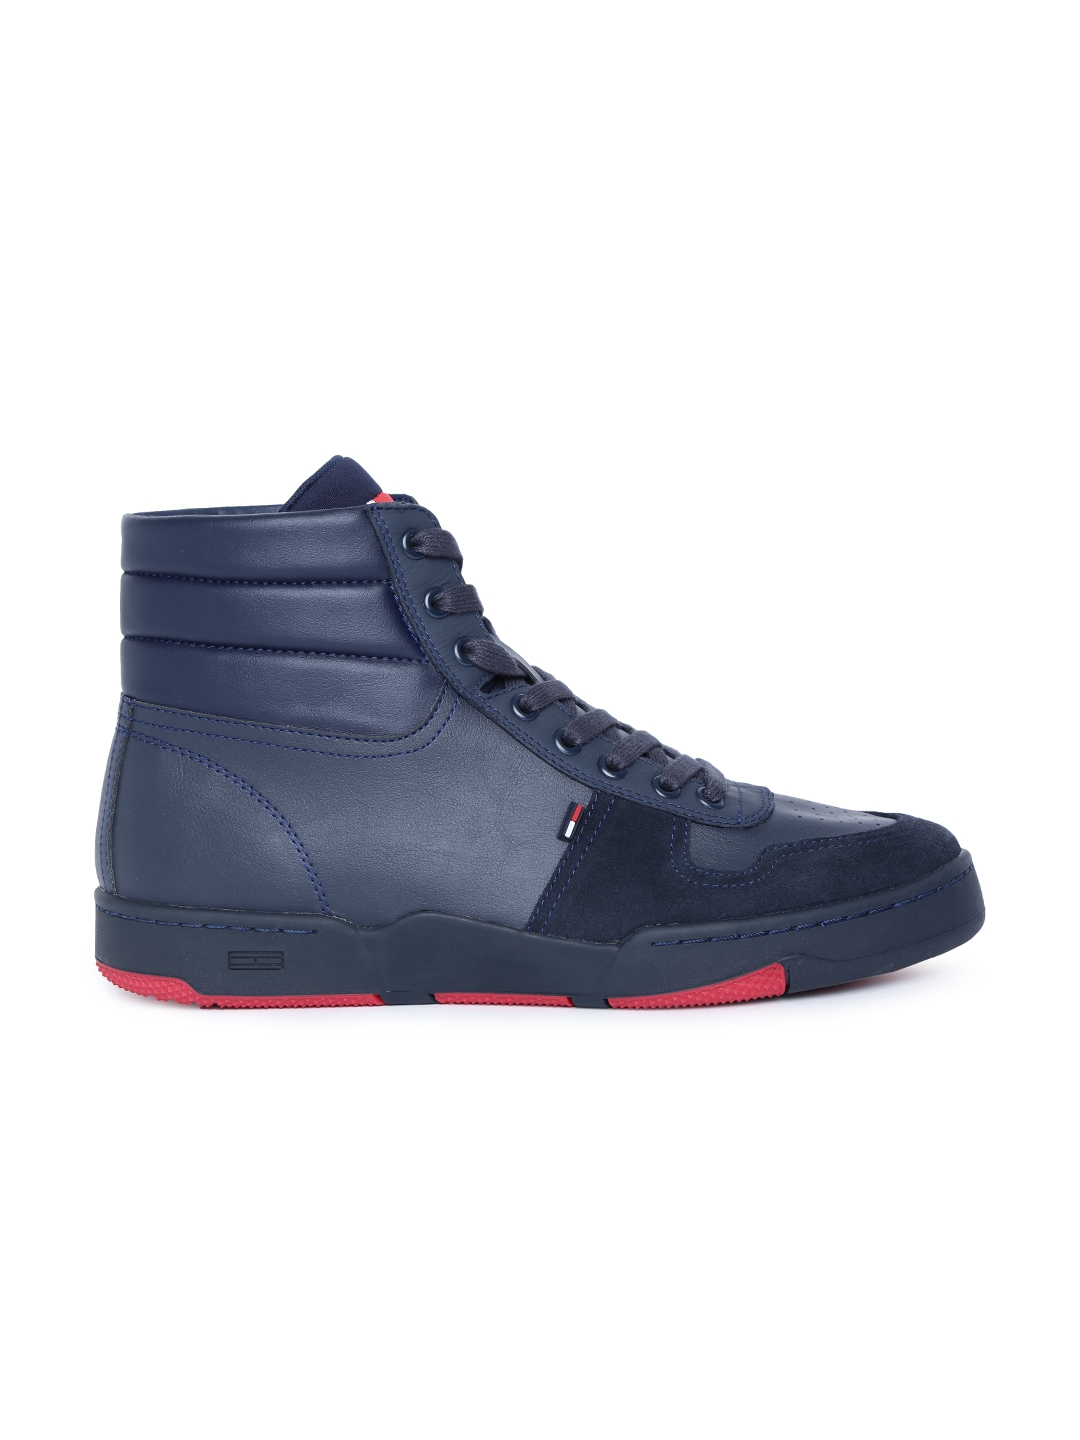 2f32bd8f8 Buy Tommy Hilfiger Men Navy Blue MID BASKET Mid Top Sneakers ...